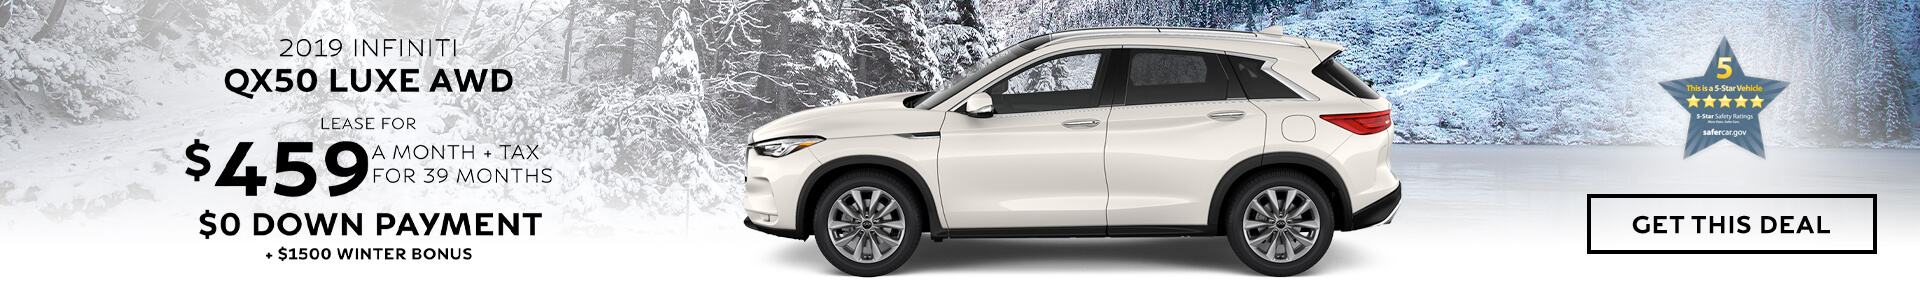 QX50 LUXE - Lease for $459